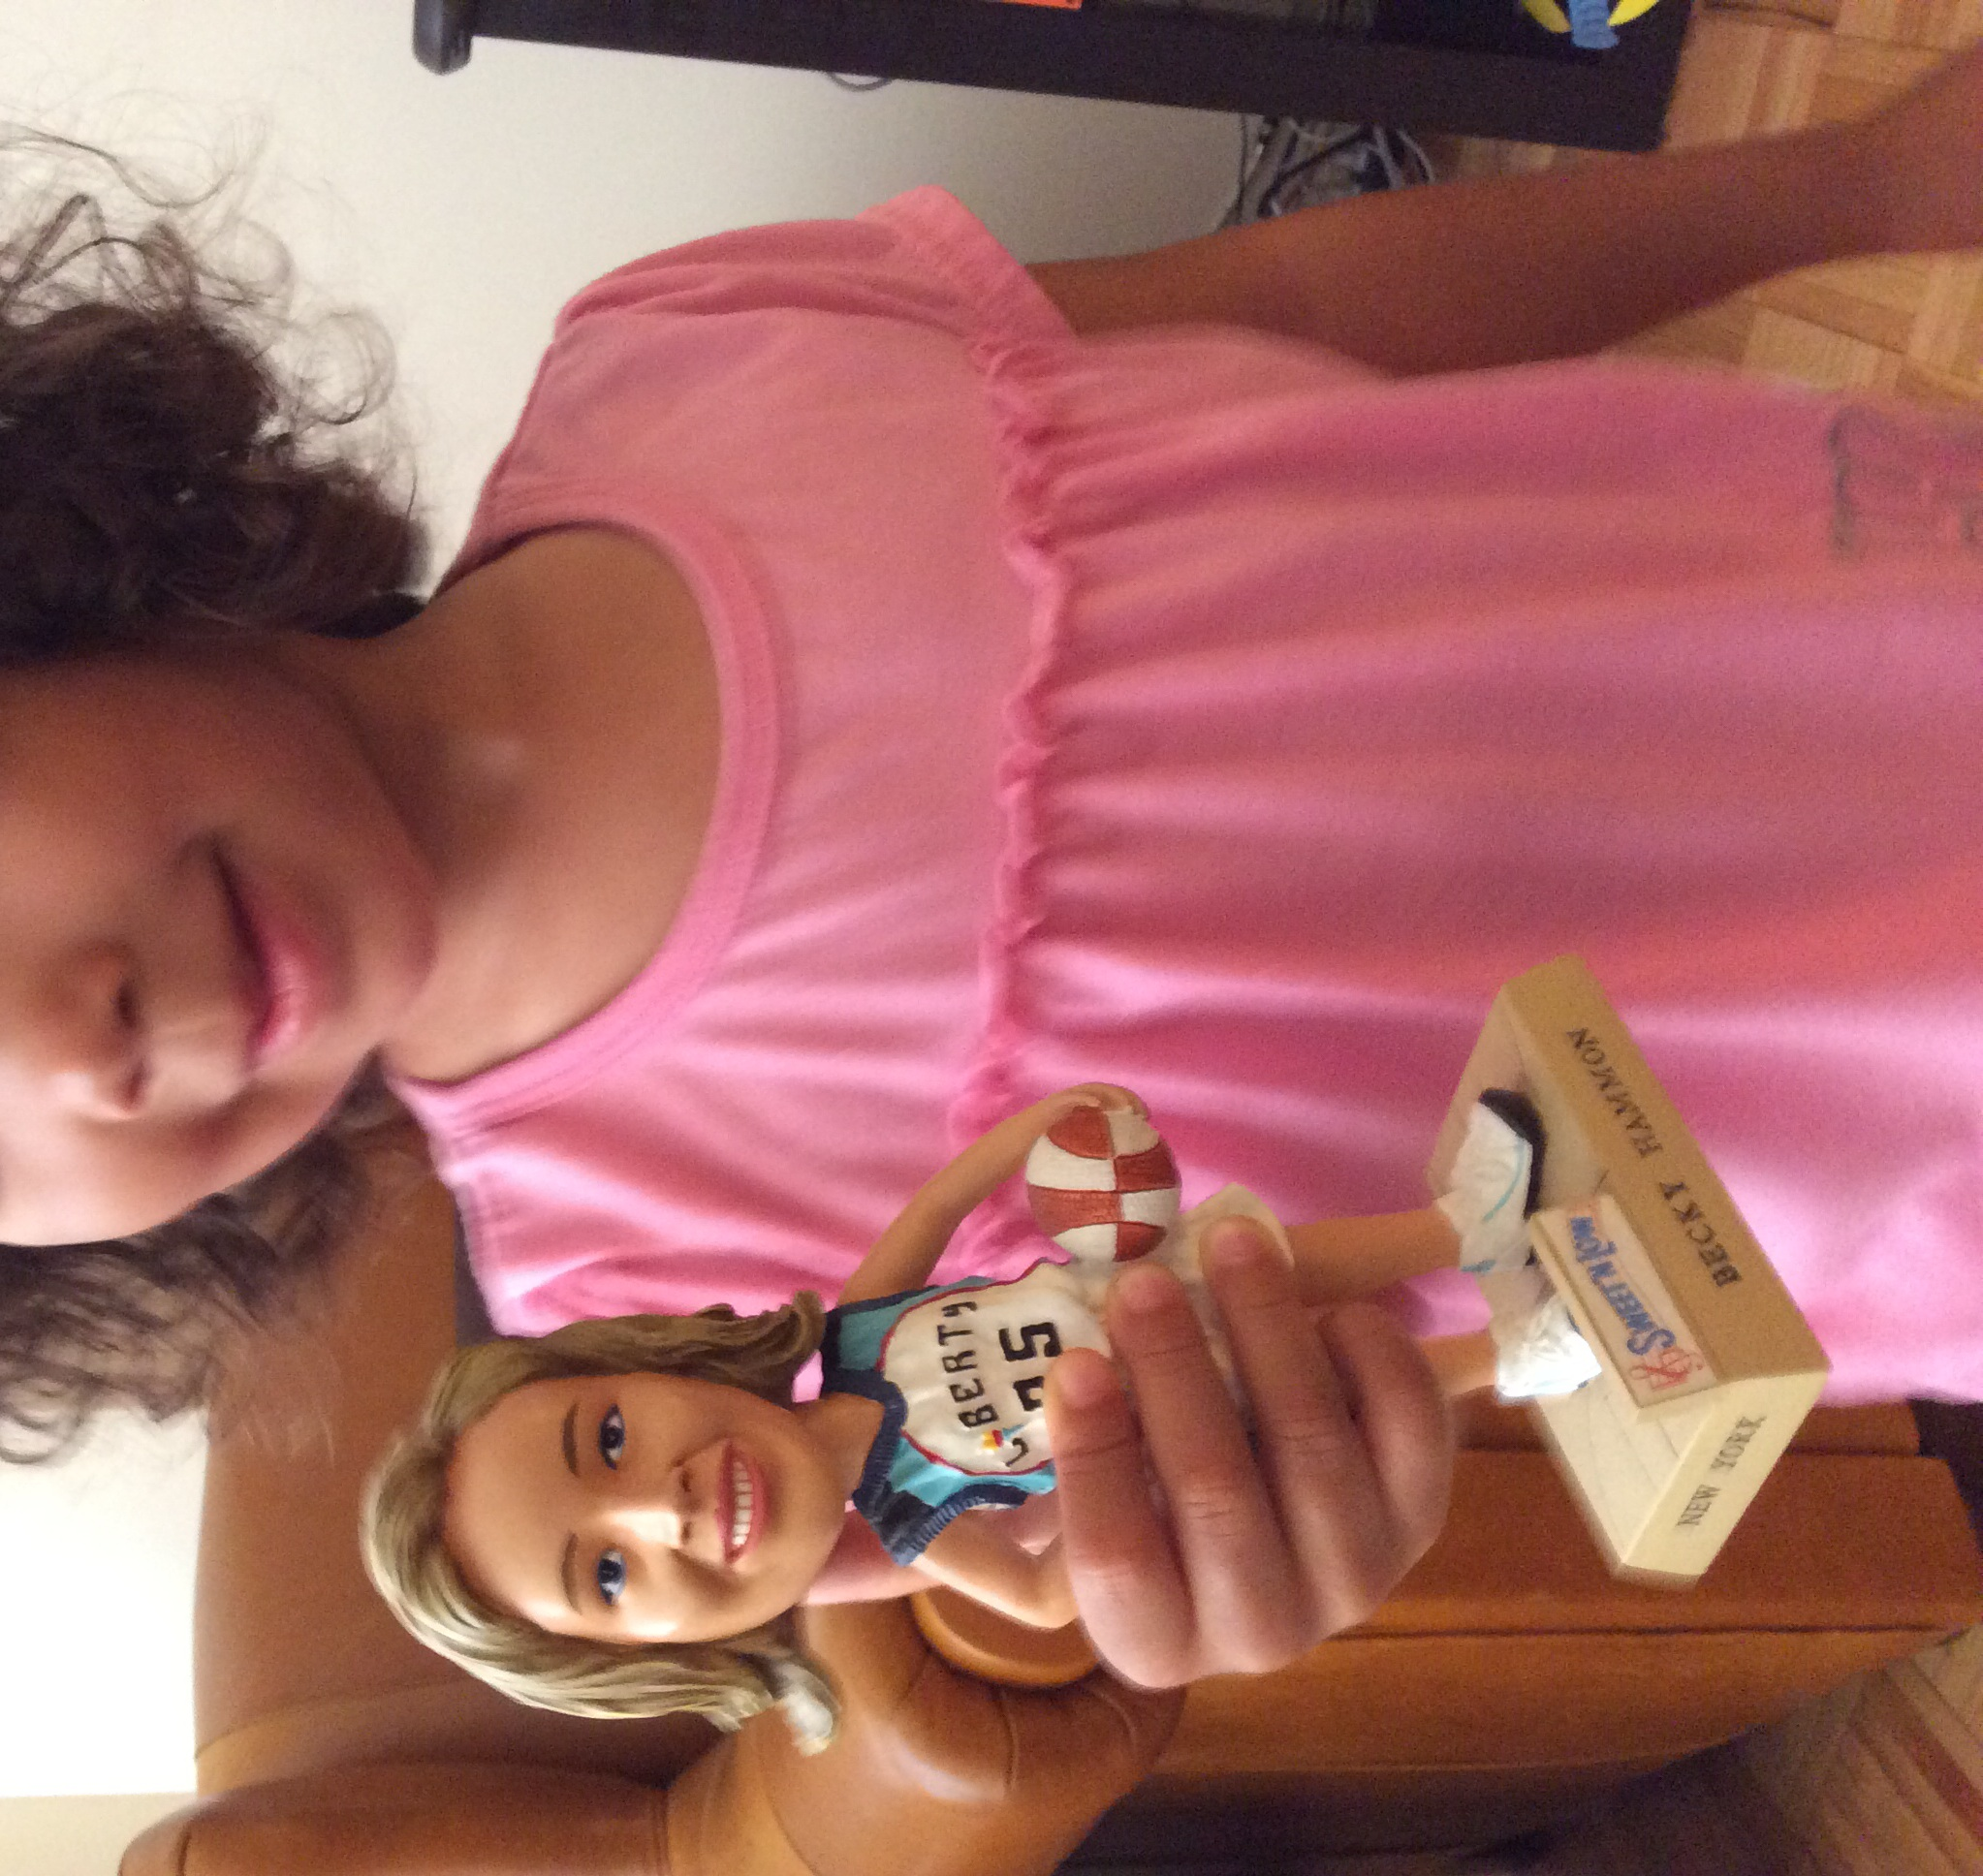 My daughter holding my old Becky Hammon bobblehead.